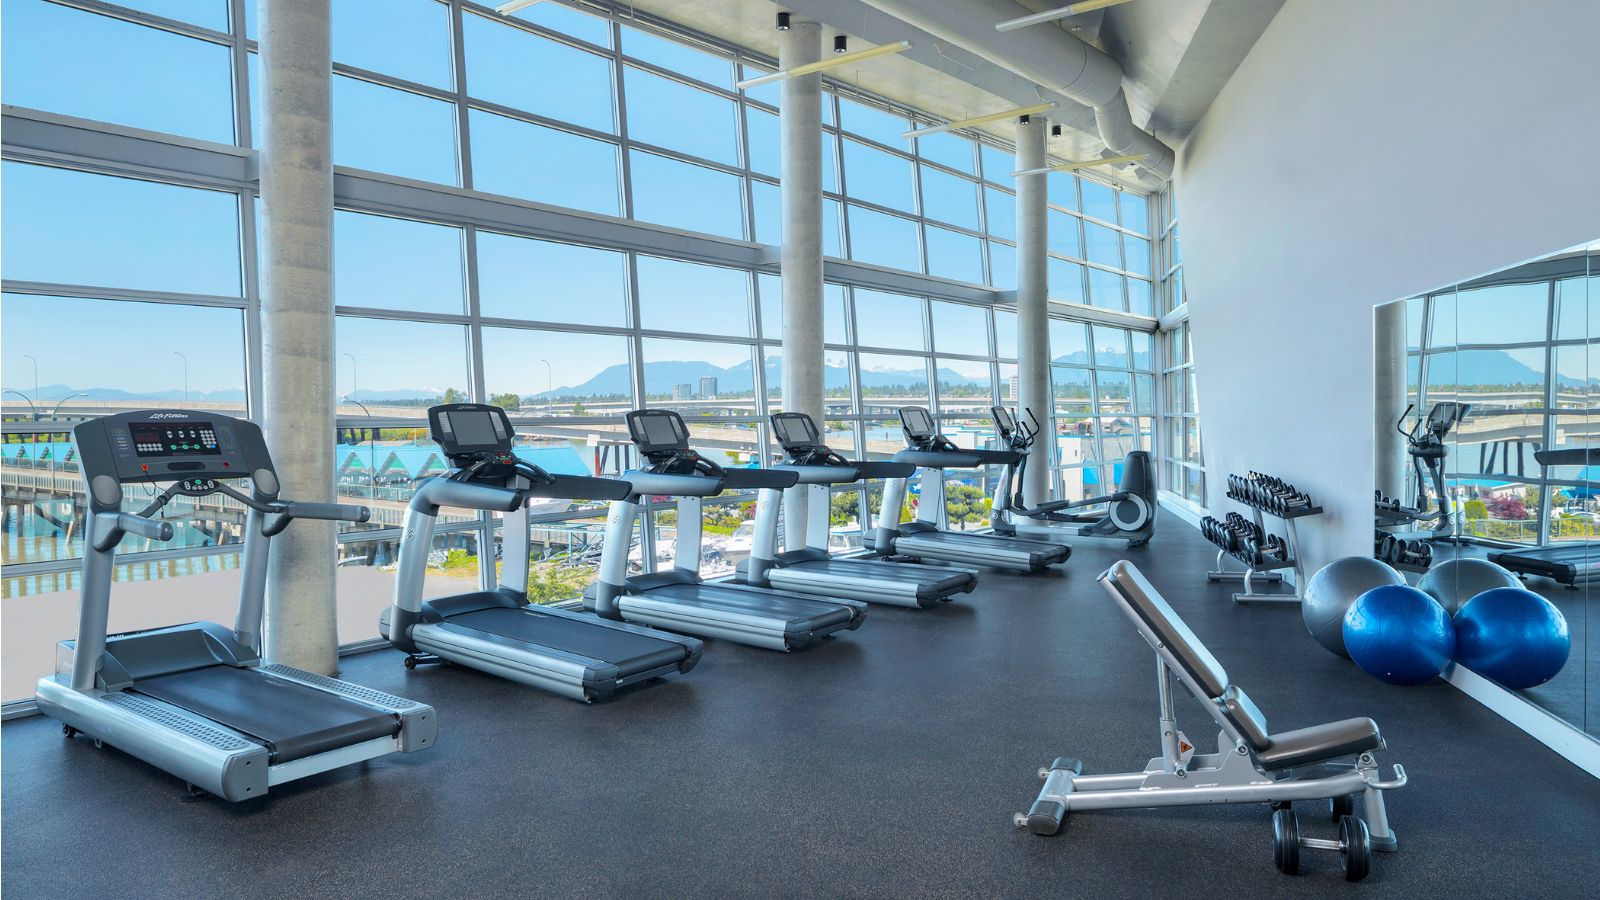 Vancouver Airport Hotel Amenities - WestinWORKOUT Fitness Center